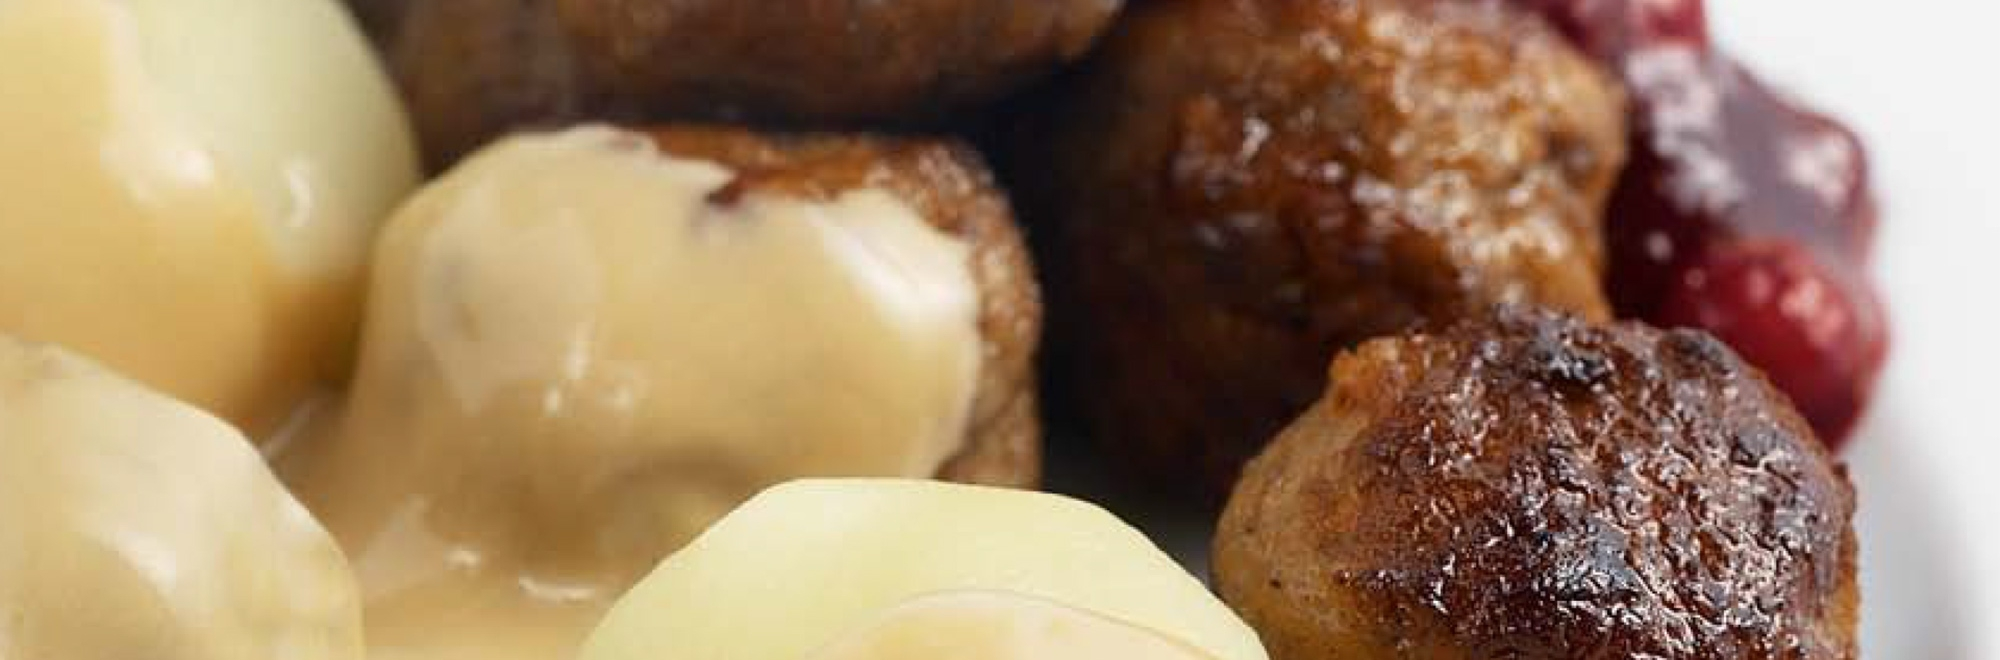 Ikea releases meatball recipe for fans missing the iconic dish during lockdown